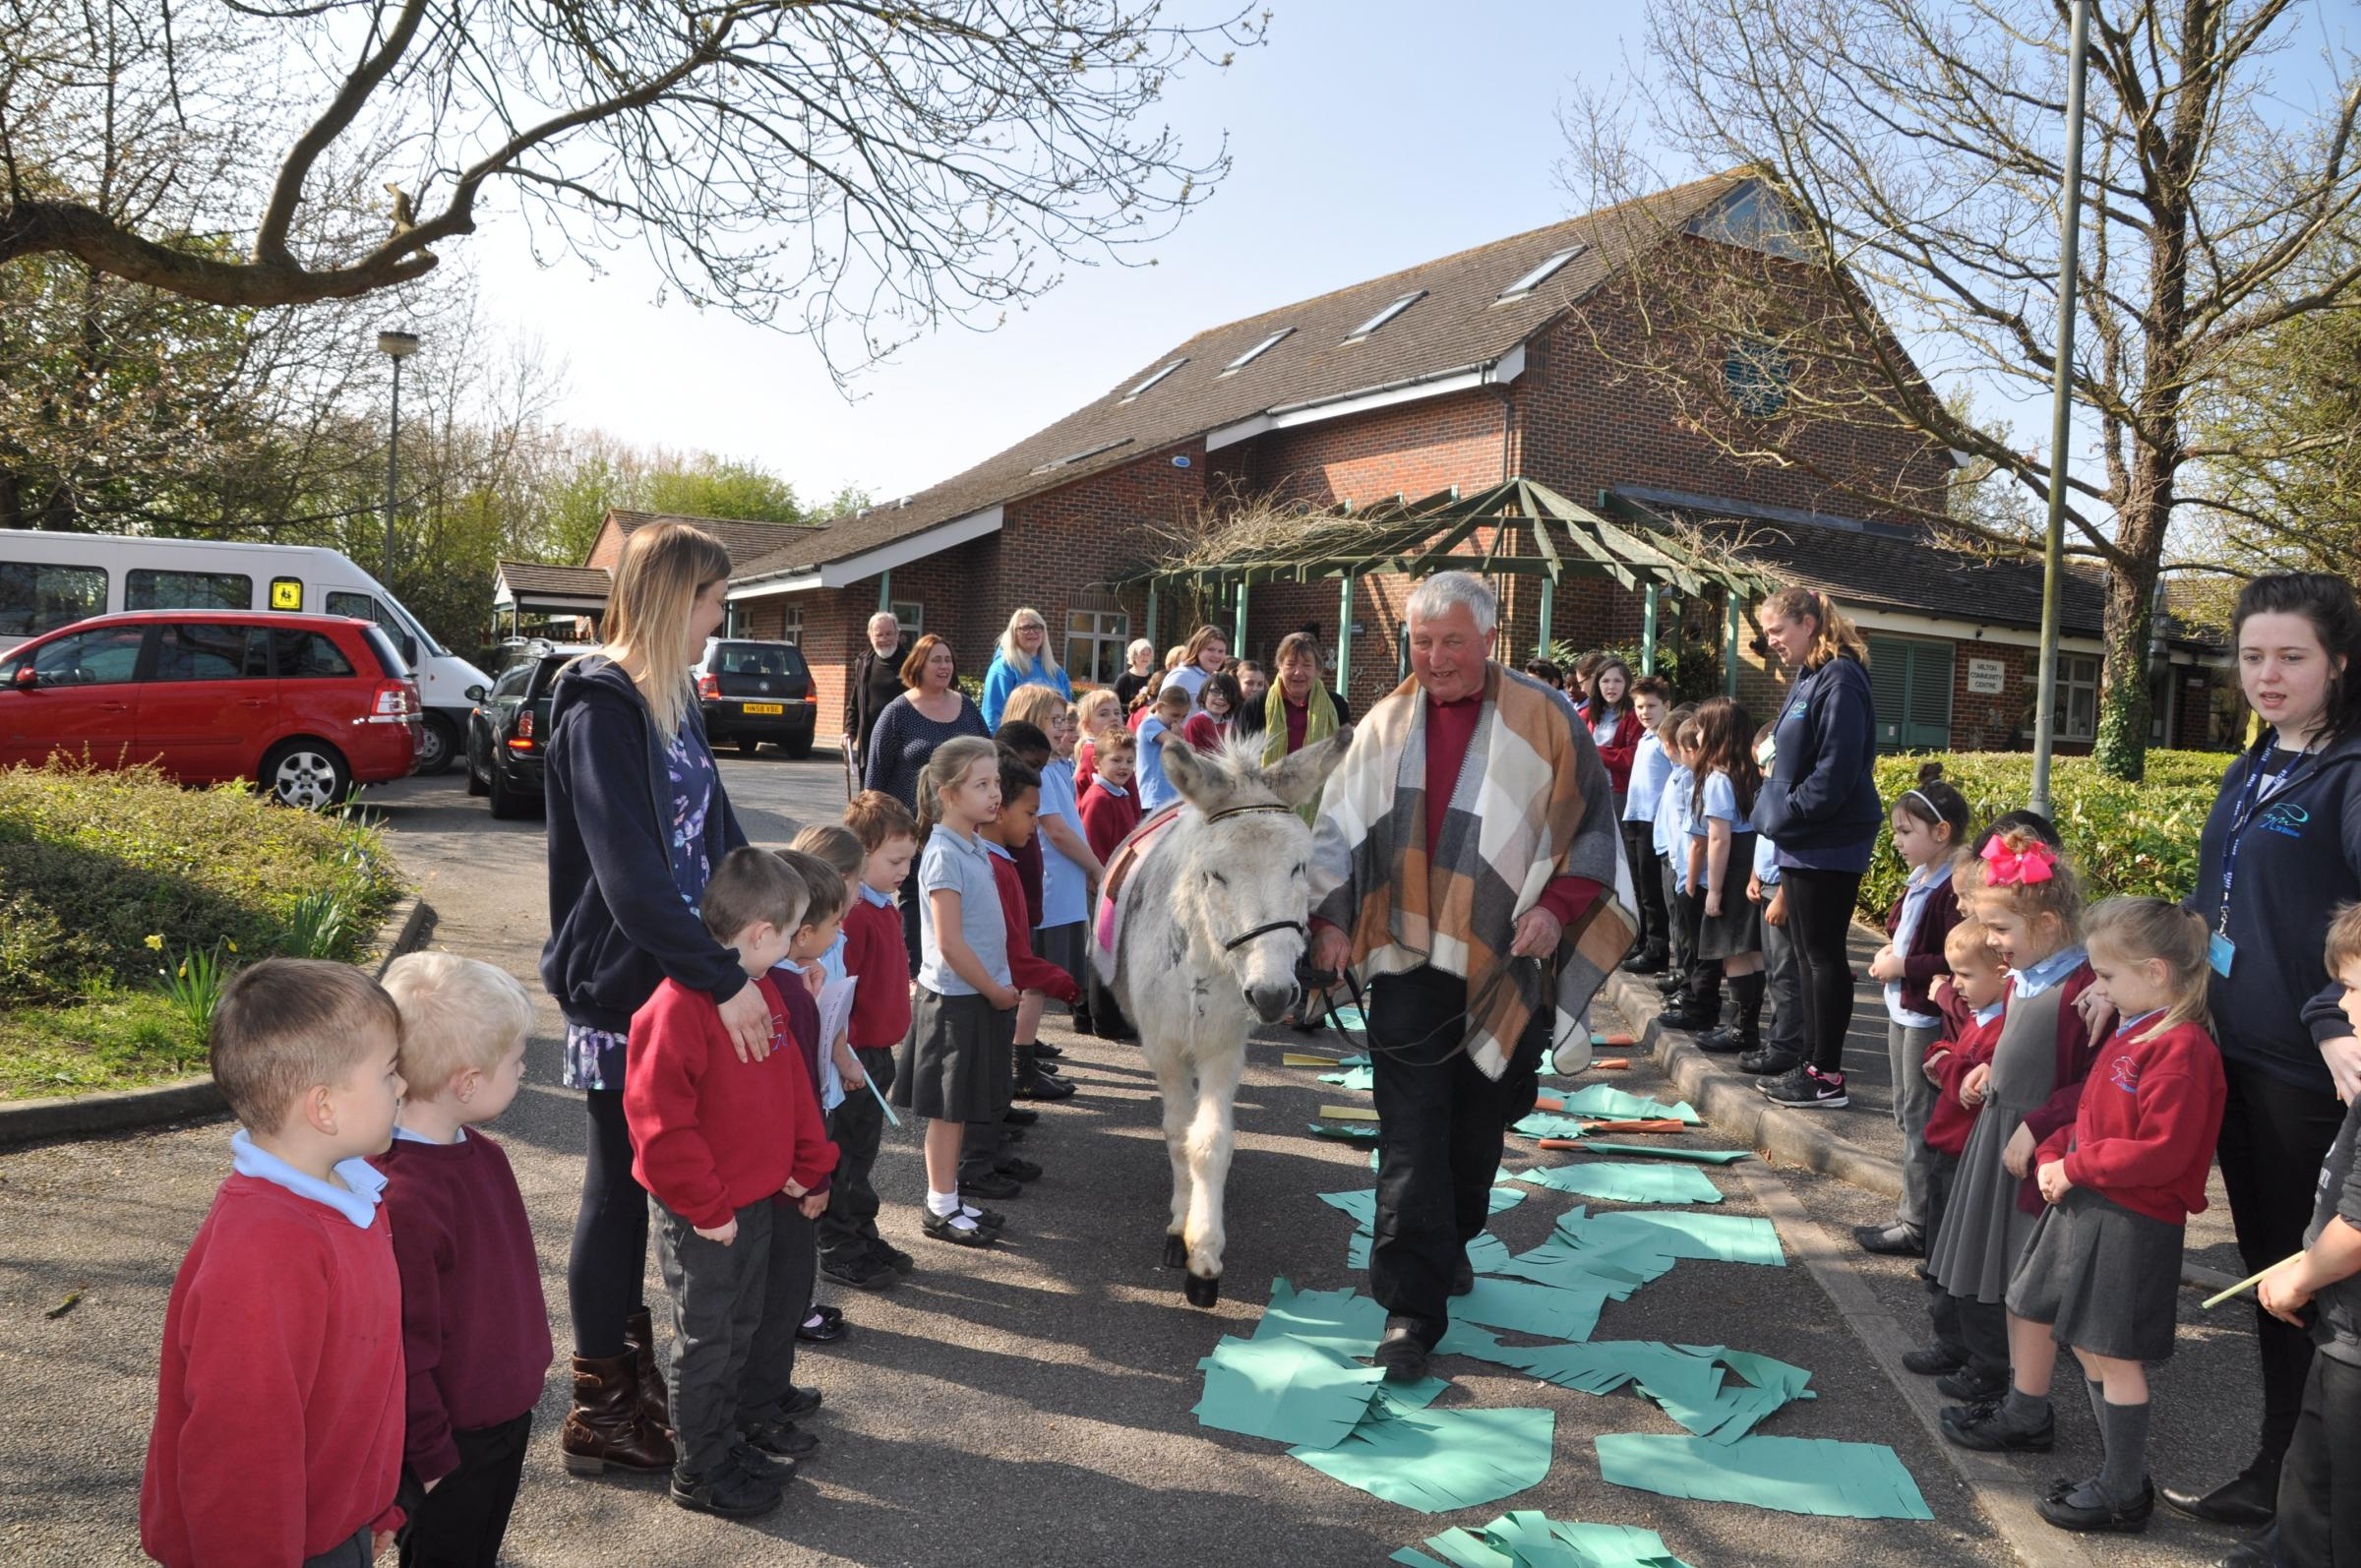 St Blaise Primary School celebrate Palm Sunday 2017 with a donkey from the Donkey Sanctuary in Brightwell-cum-Sotwell. Picture: St Blaise Primary School